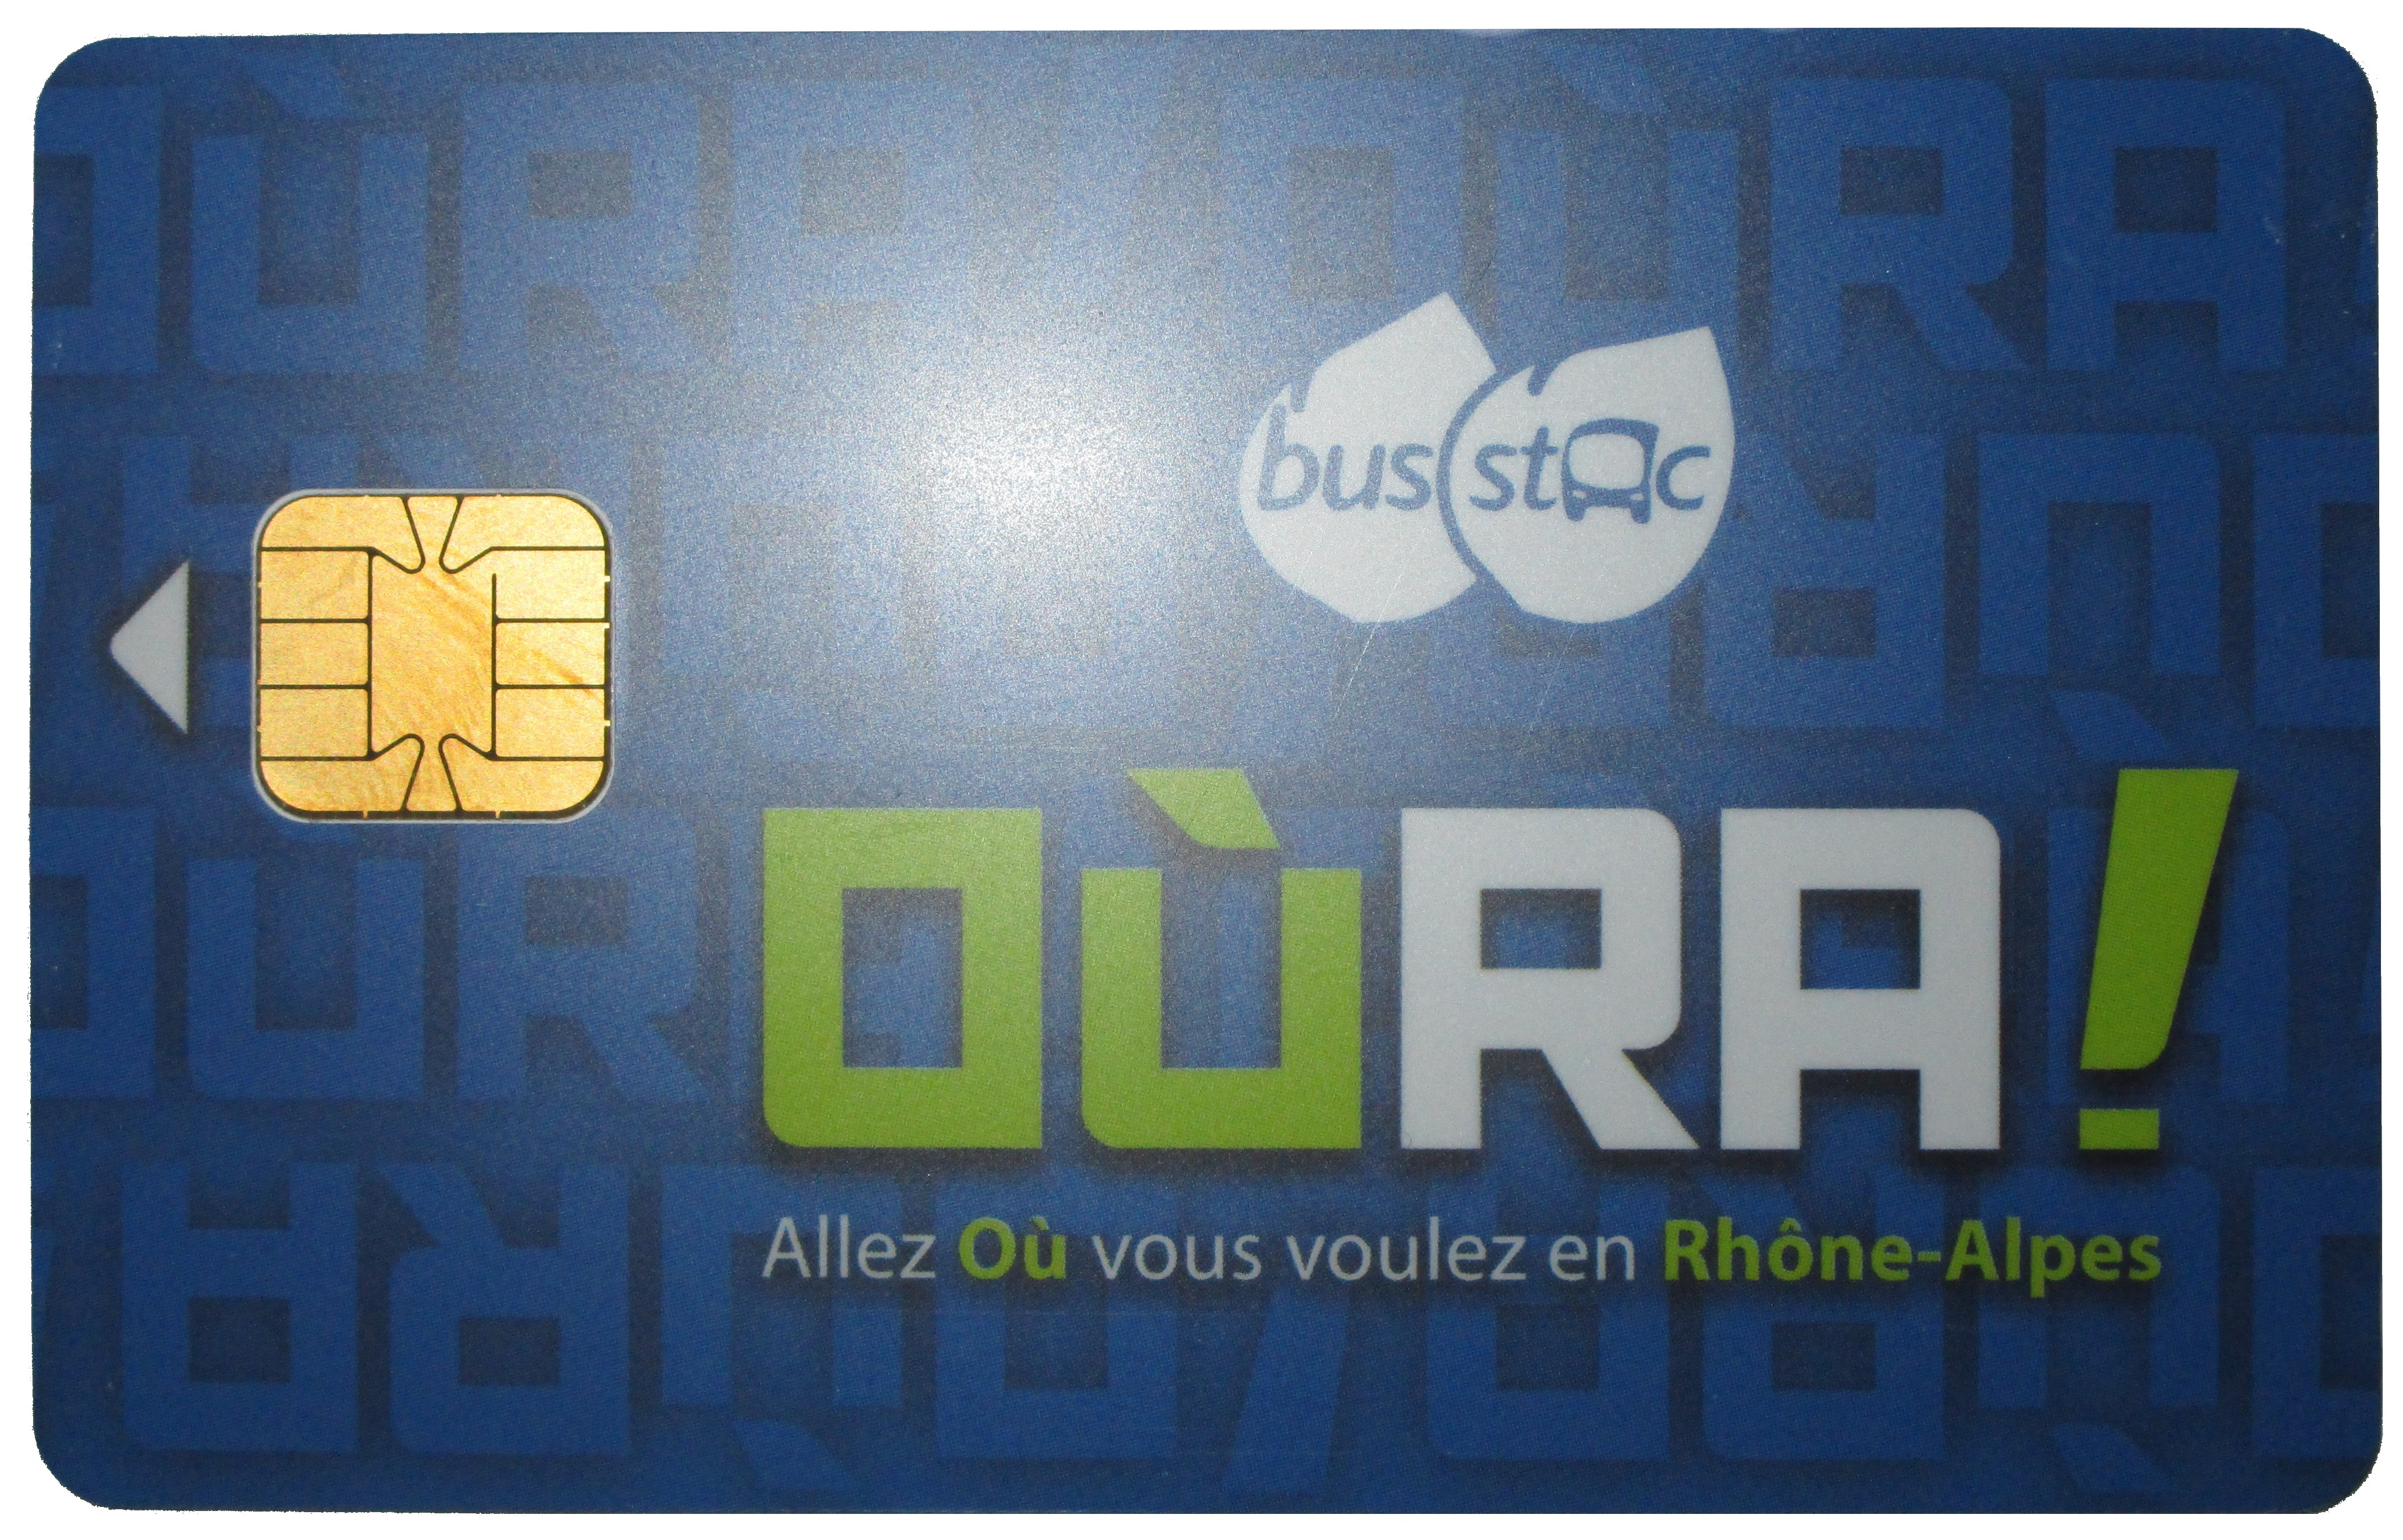 Carte Oura Bus.Fichier Carte Oura Stac Chambery Jpg Wikipedia